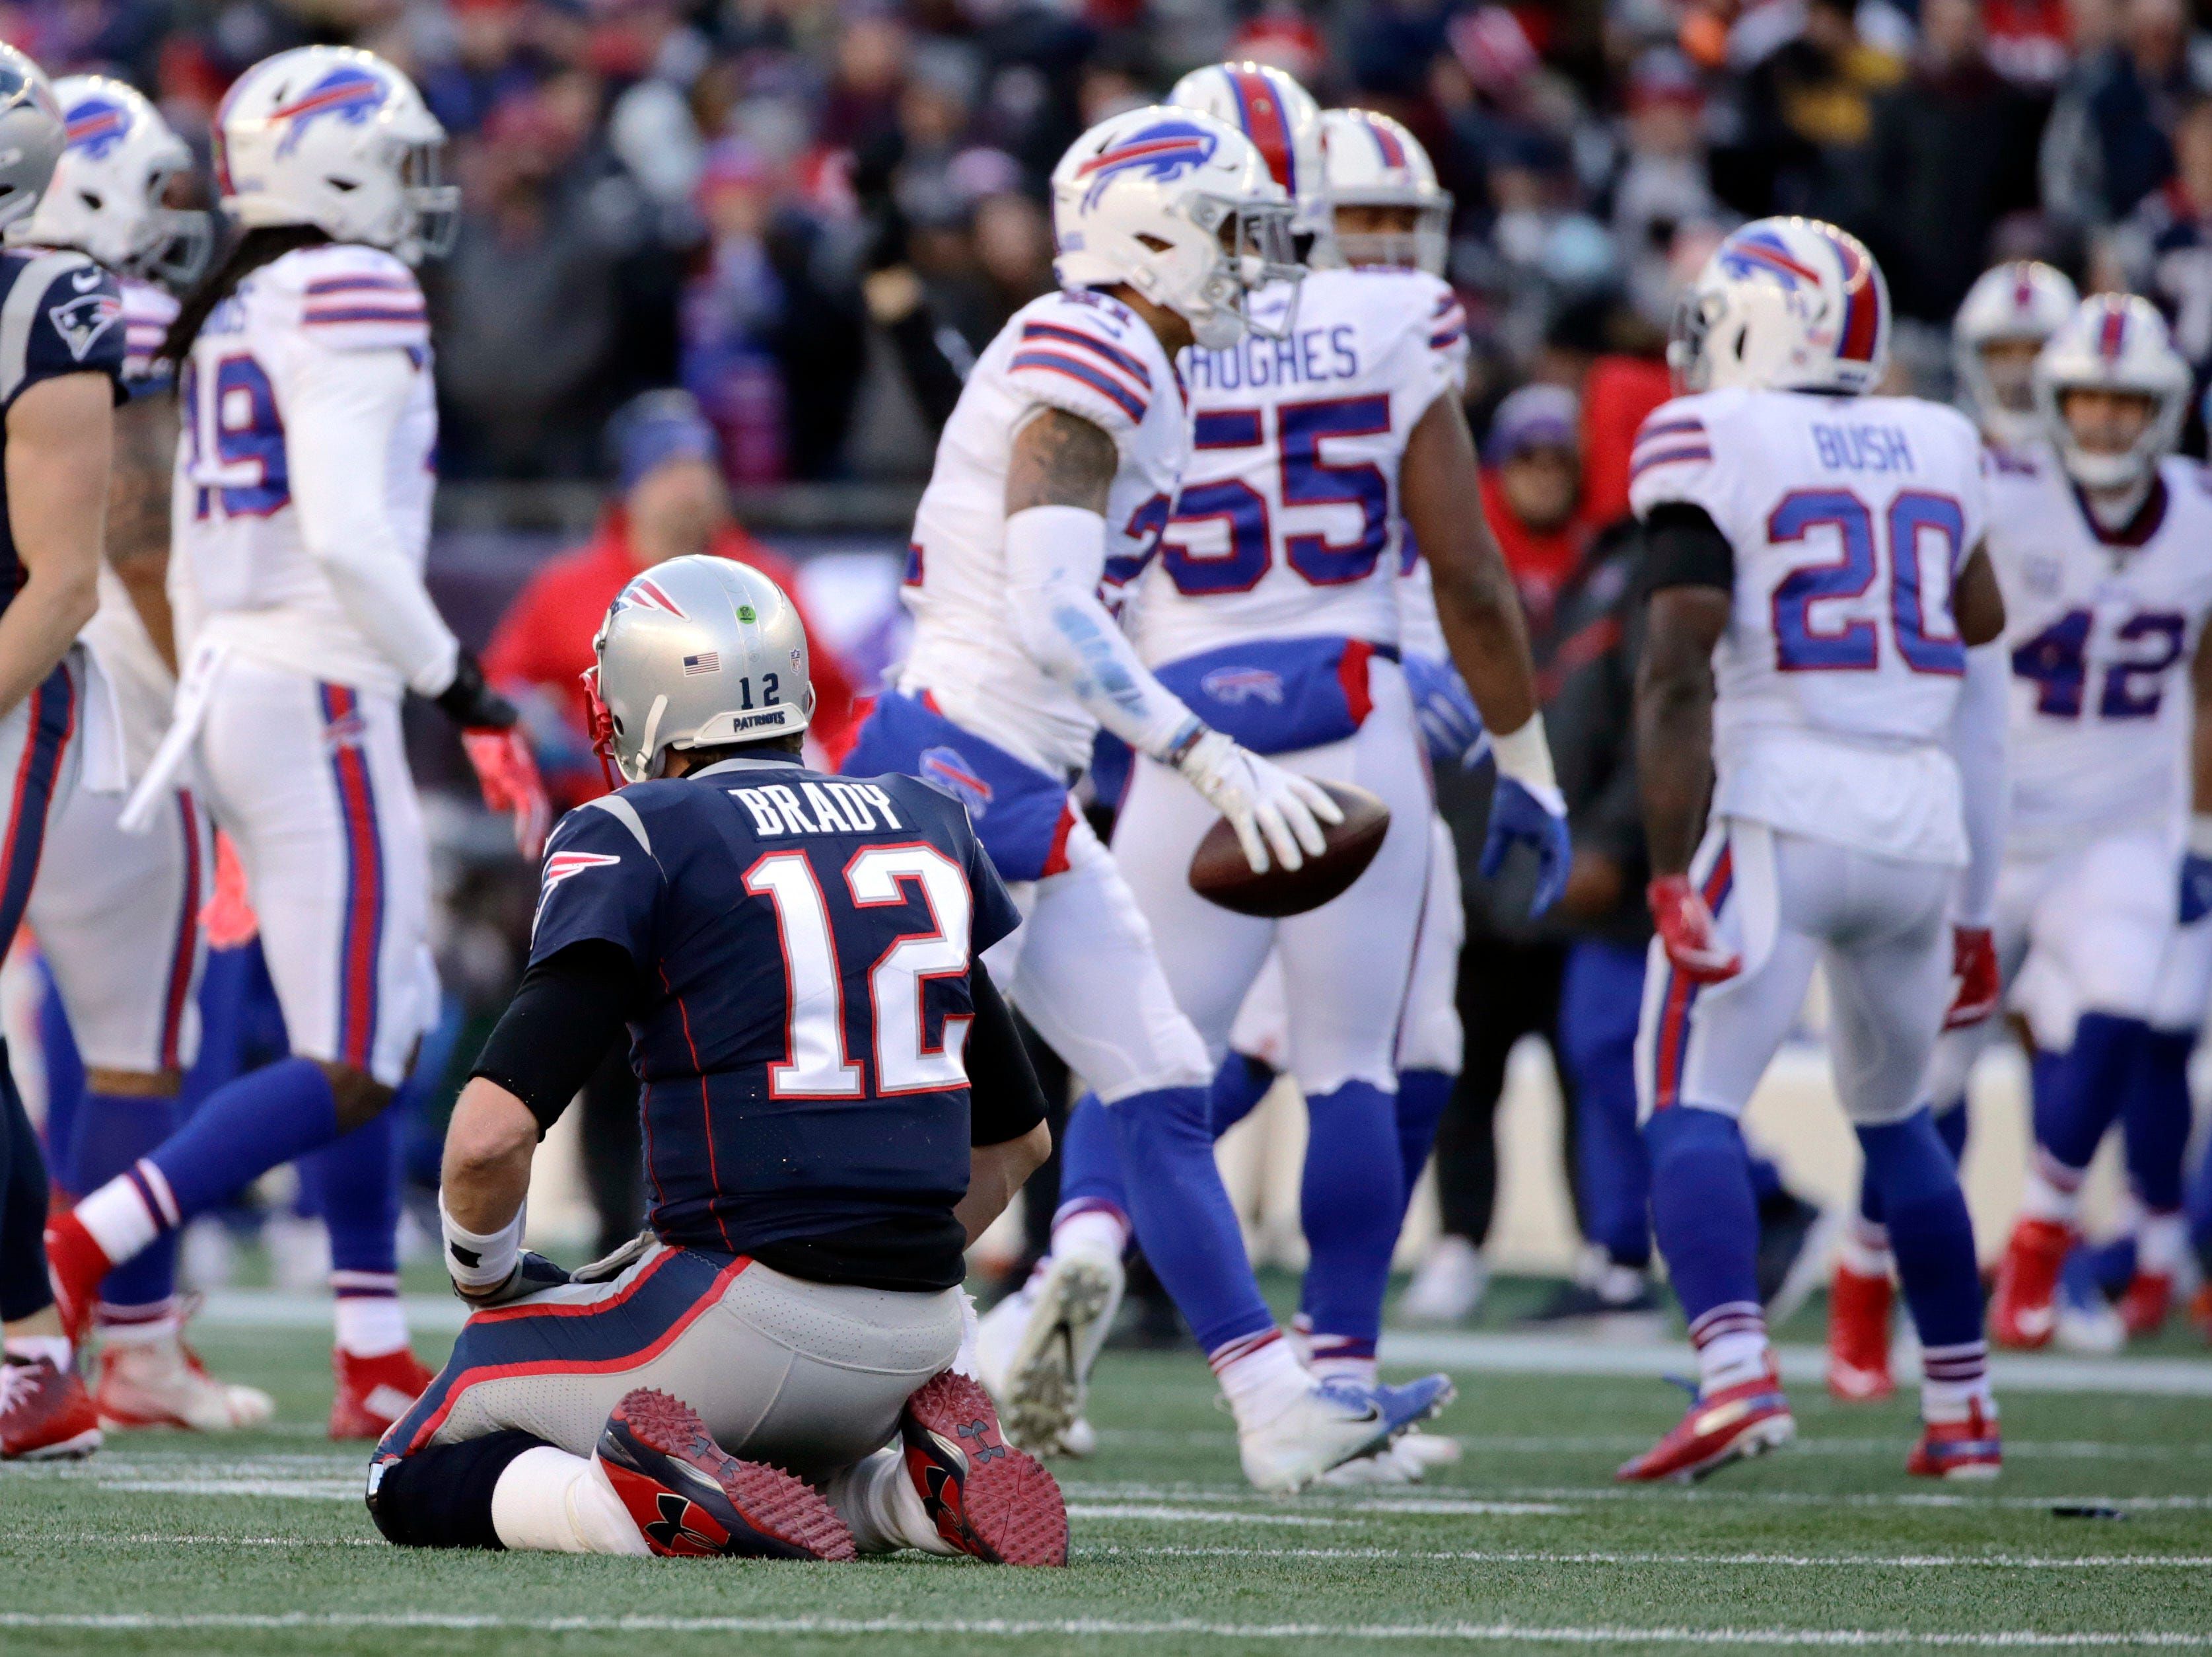 Buffalo Bills linebacker Lorenzo Alexander carries the ball after intercepting a pass by New England Patriots quarterback Tom Brady (12) during the first half of an NFL football game, Sunday, Dec. 23, 2018, in Foxborough, Mass. (AP Photo/Elise Amendola)